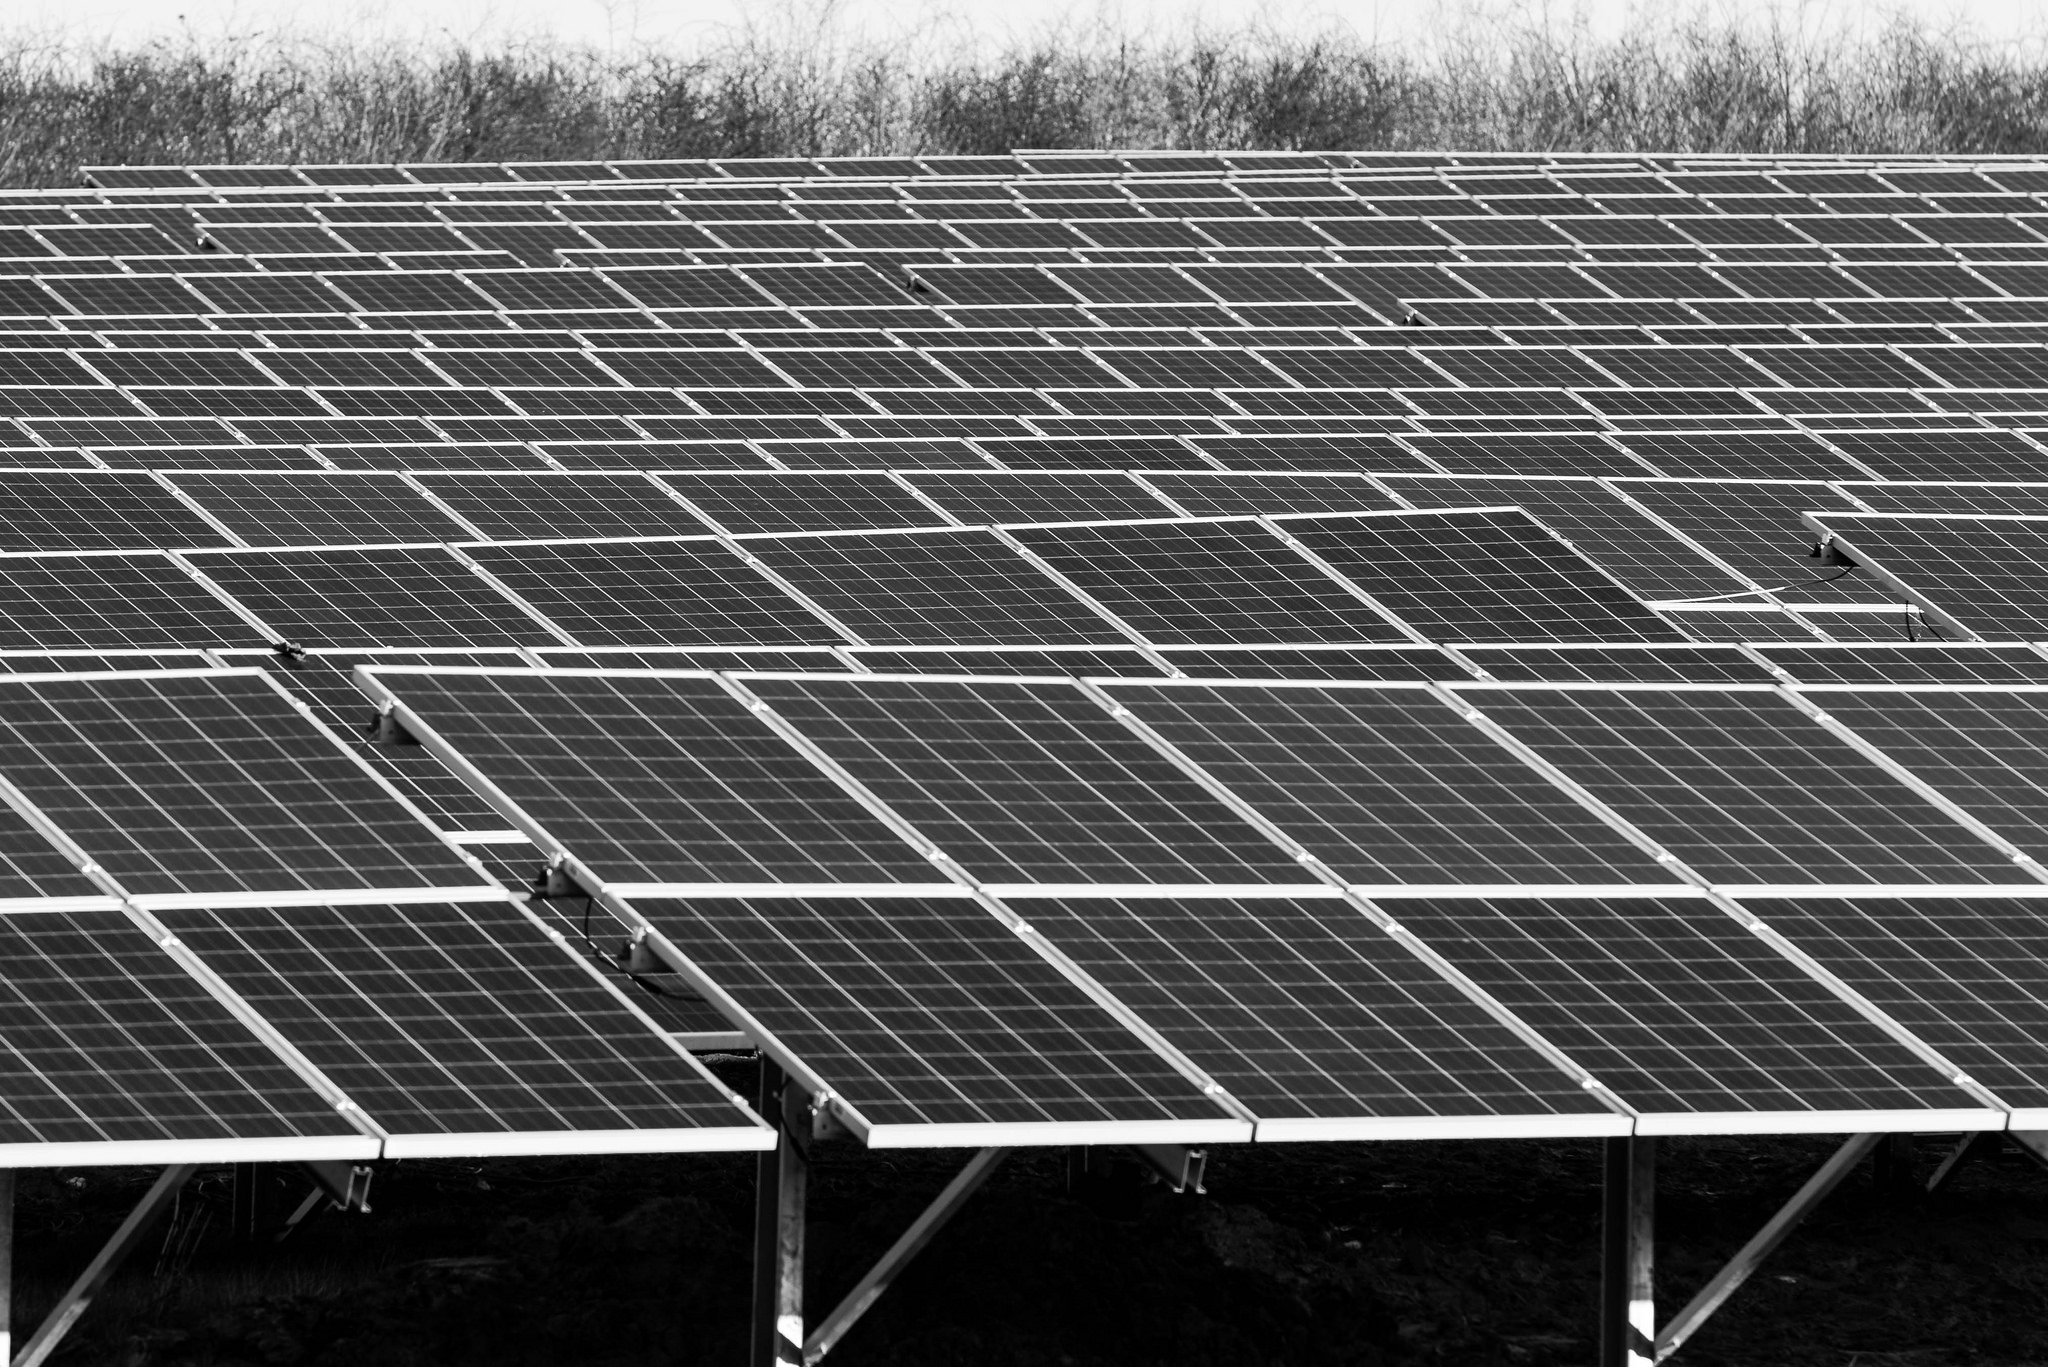 Solar panels started to be installed at the Dubai Farm back in 2016. Image: Gerry Machen / Flickr